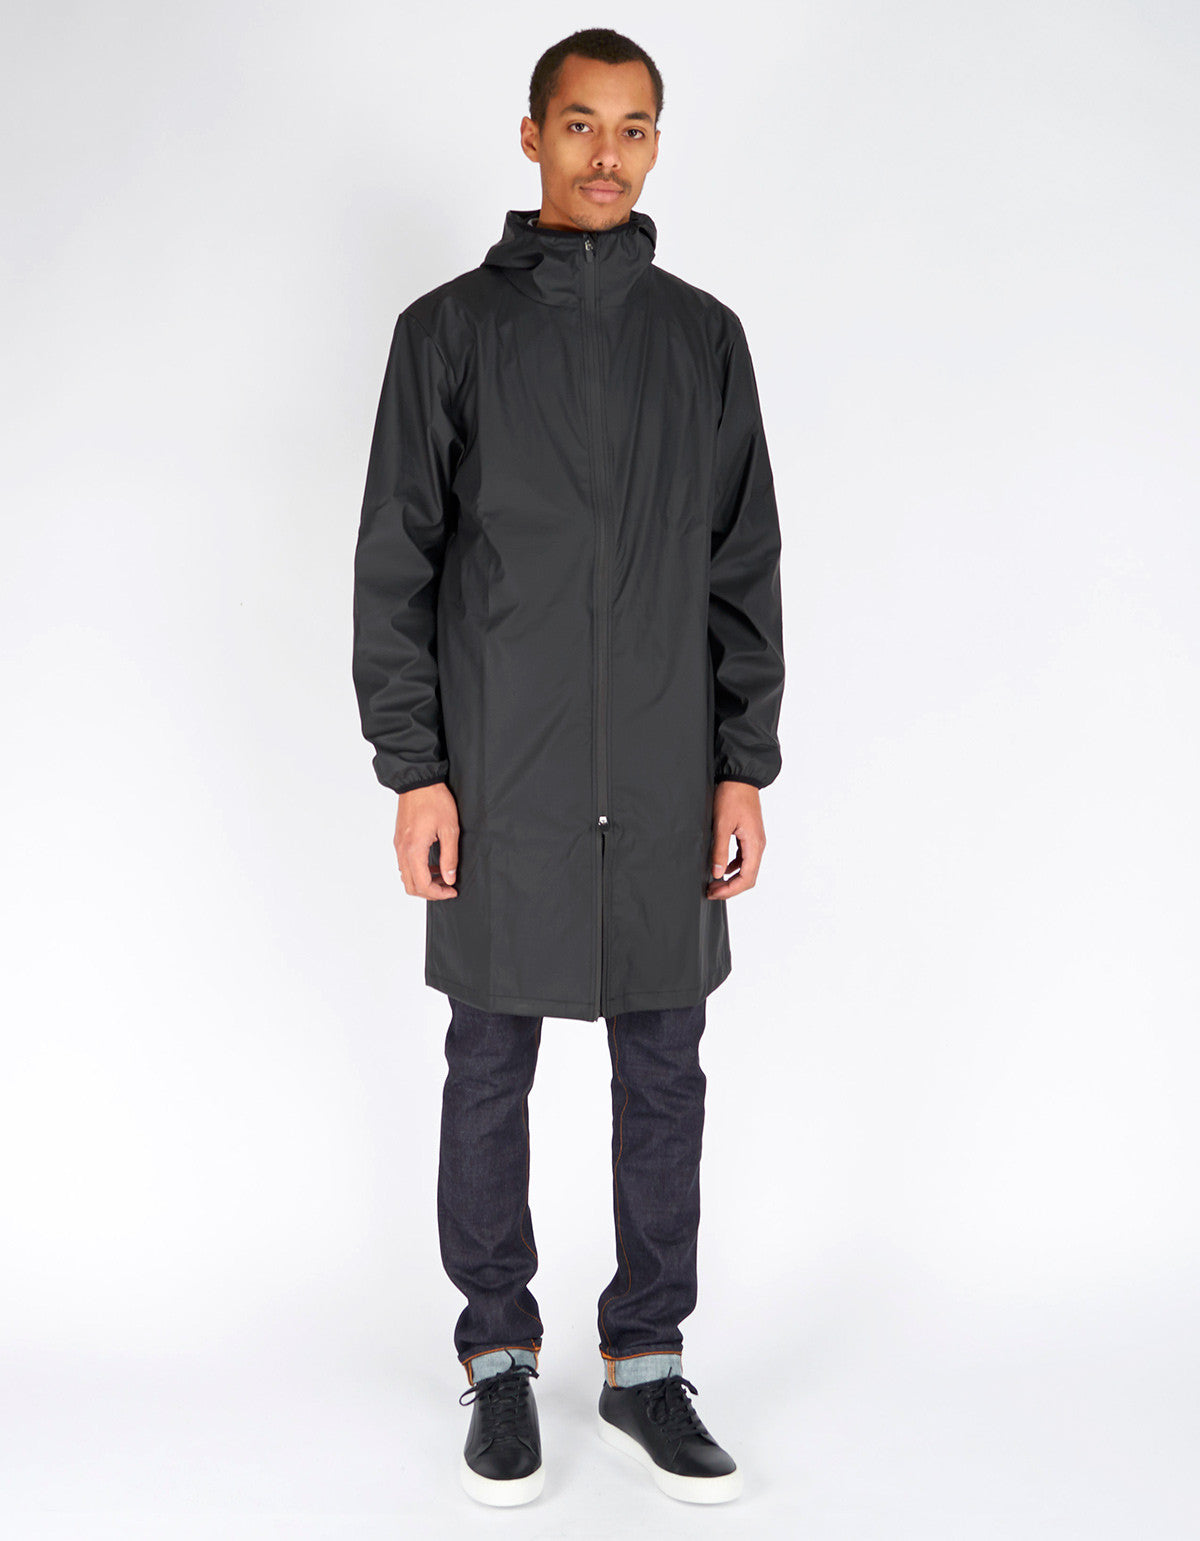 Rains Men's Base Jacket Long Black - Still Life - 5